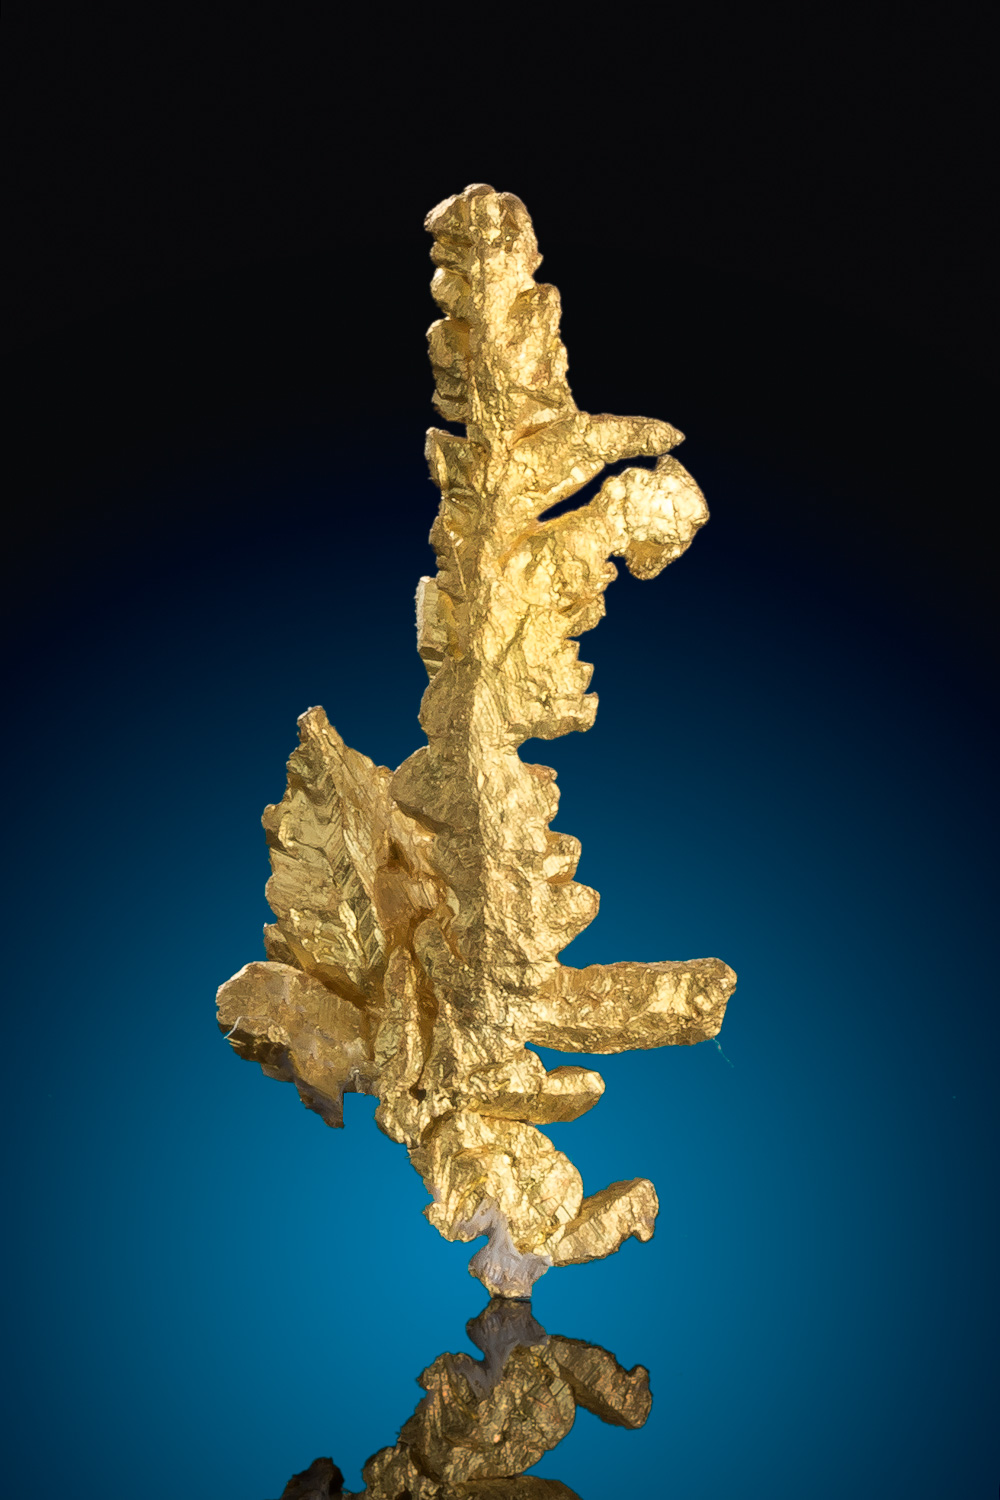 Fantastic Long Dendritic Gold Crystal - Mariposa, California